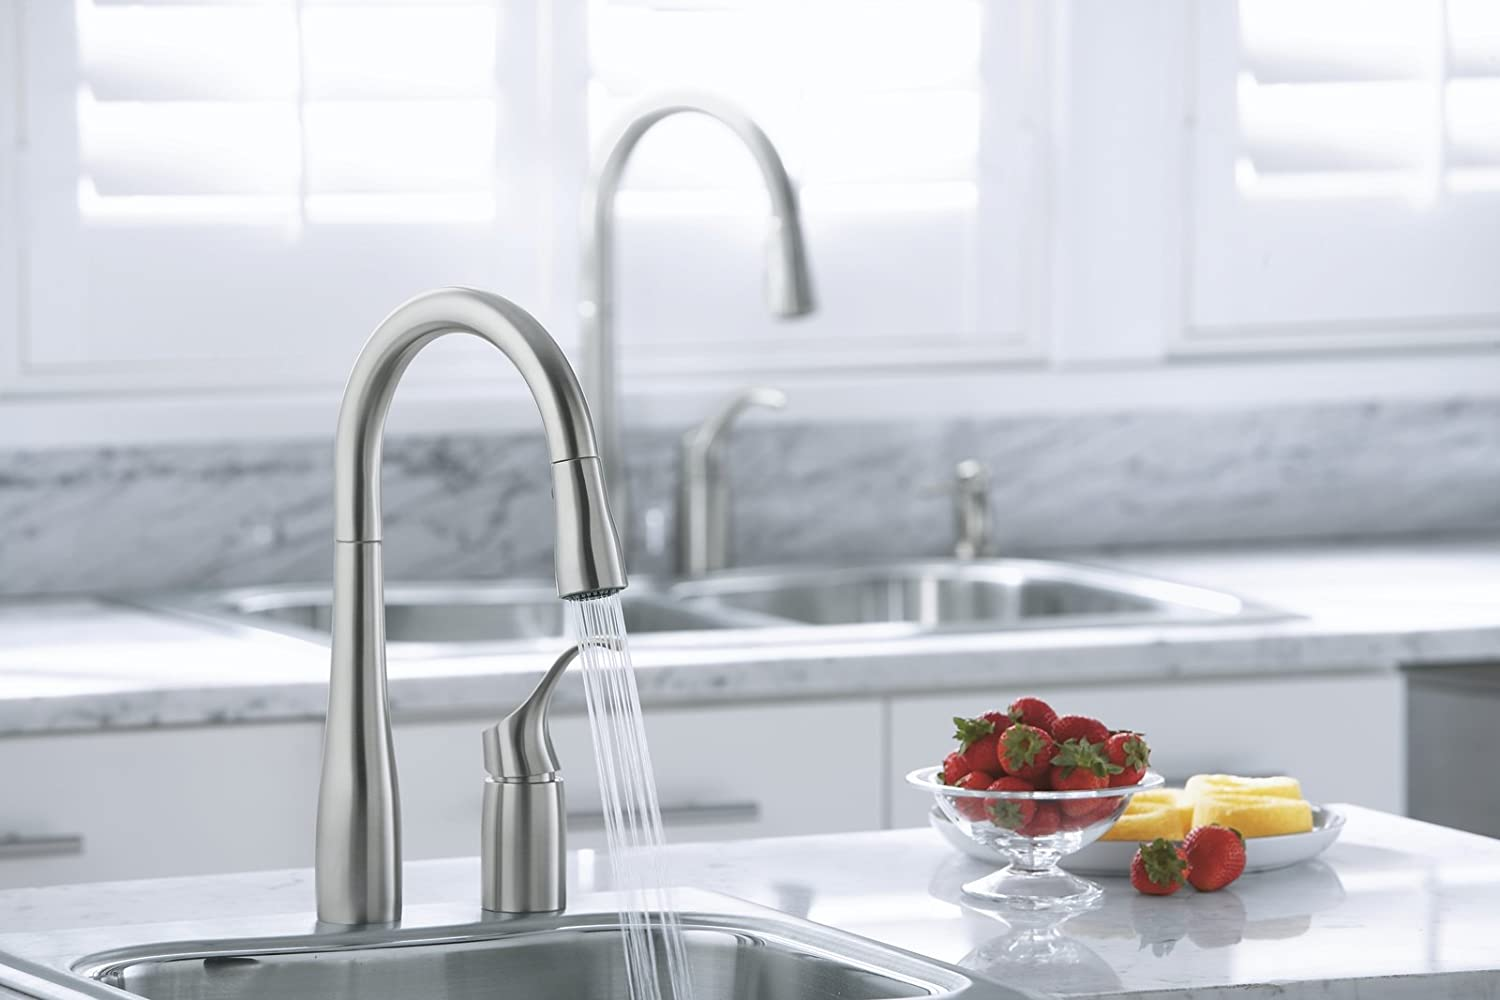 Kohler K-647-VS Simplice Pull-Down Kitchen Sink Faucet (Vibrant ...